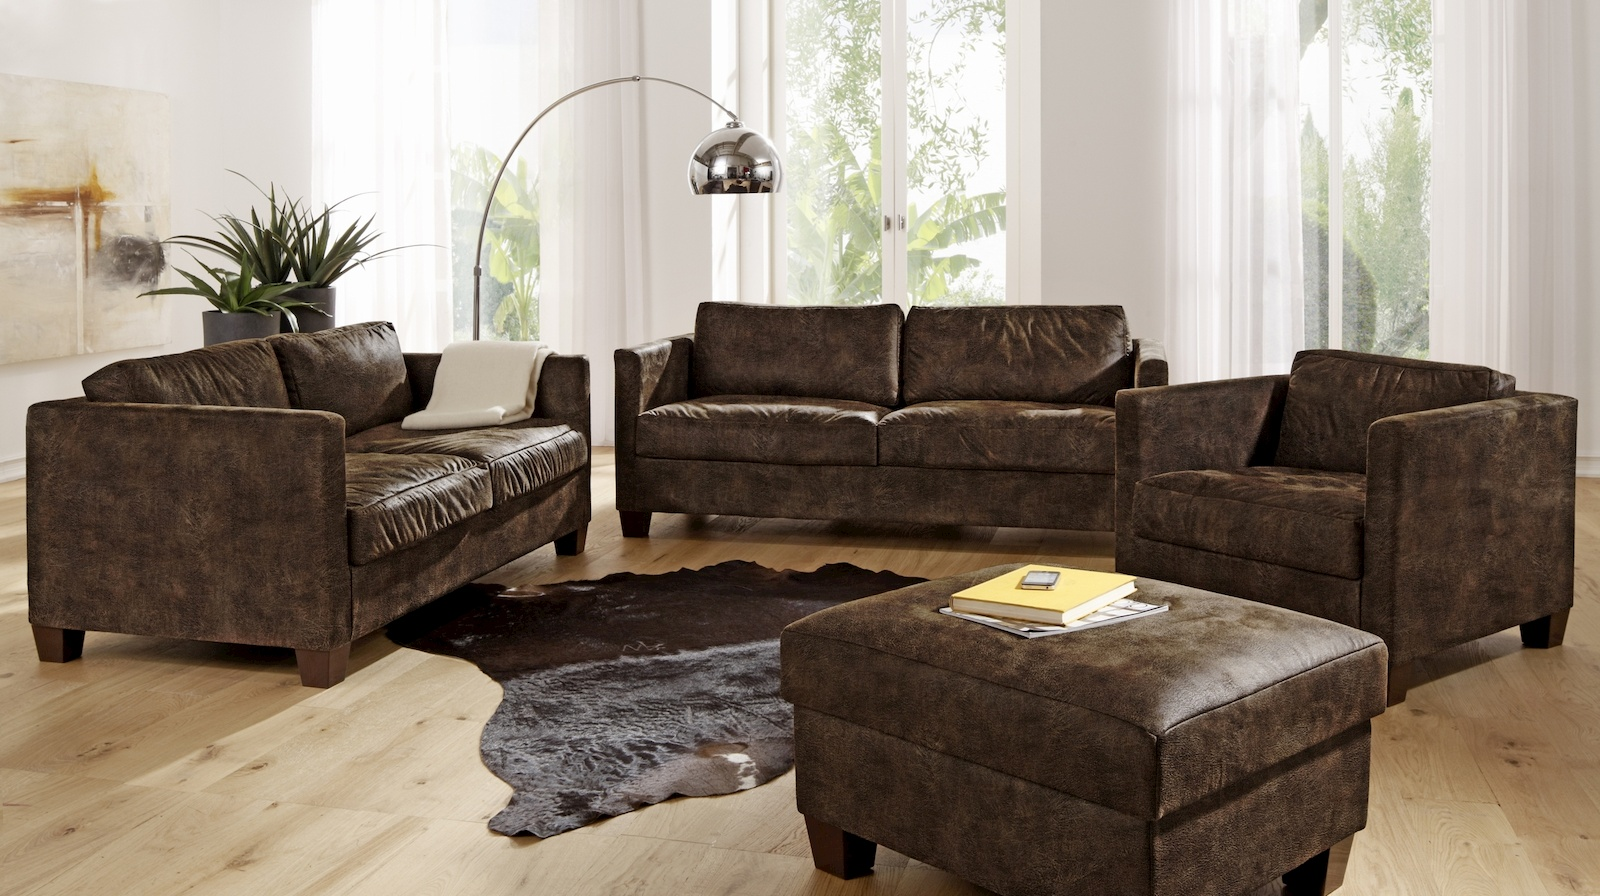 nebraska ecksofa eckgarnitur couch sofa lederoptik. Black Bedroom Furniture Sets. Home Design Ideas